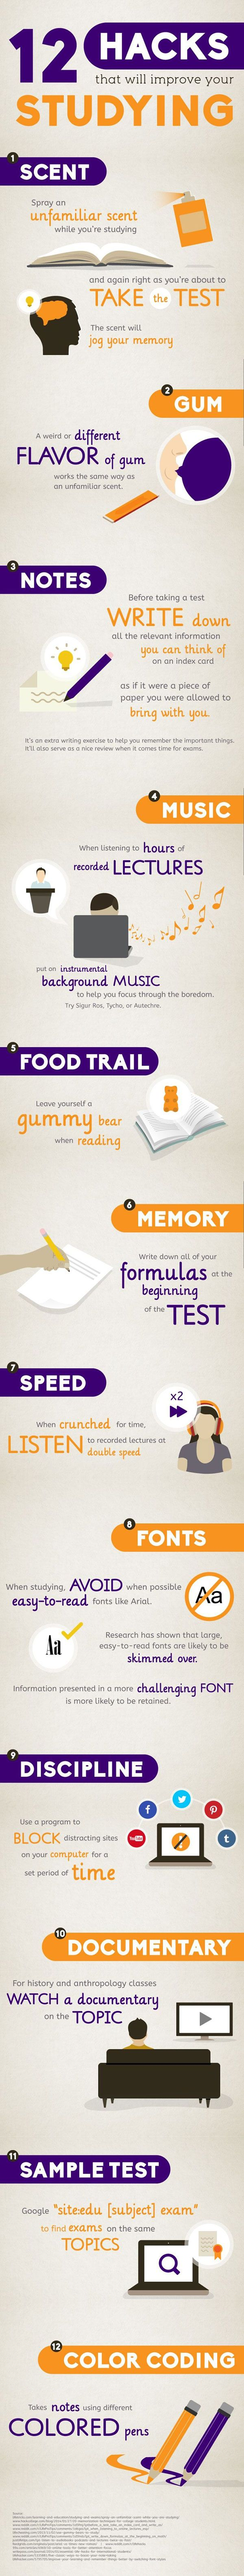 12 Hacks That Will Improve Your Studying